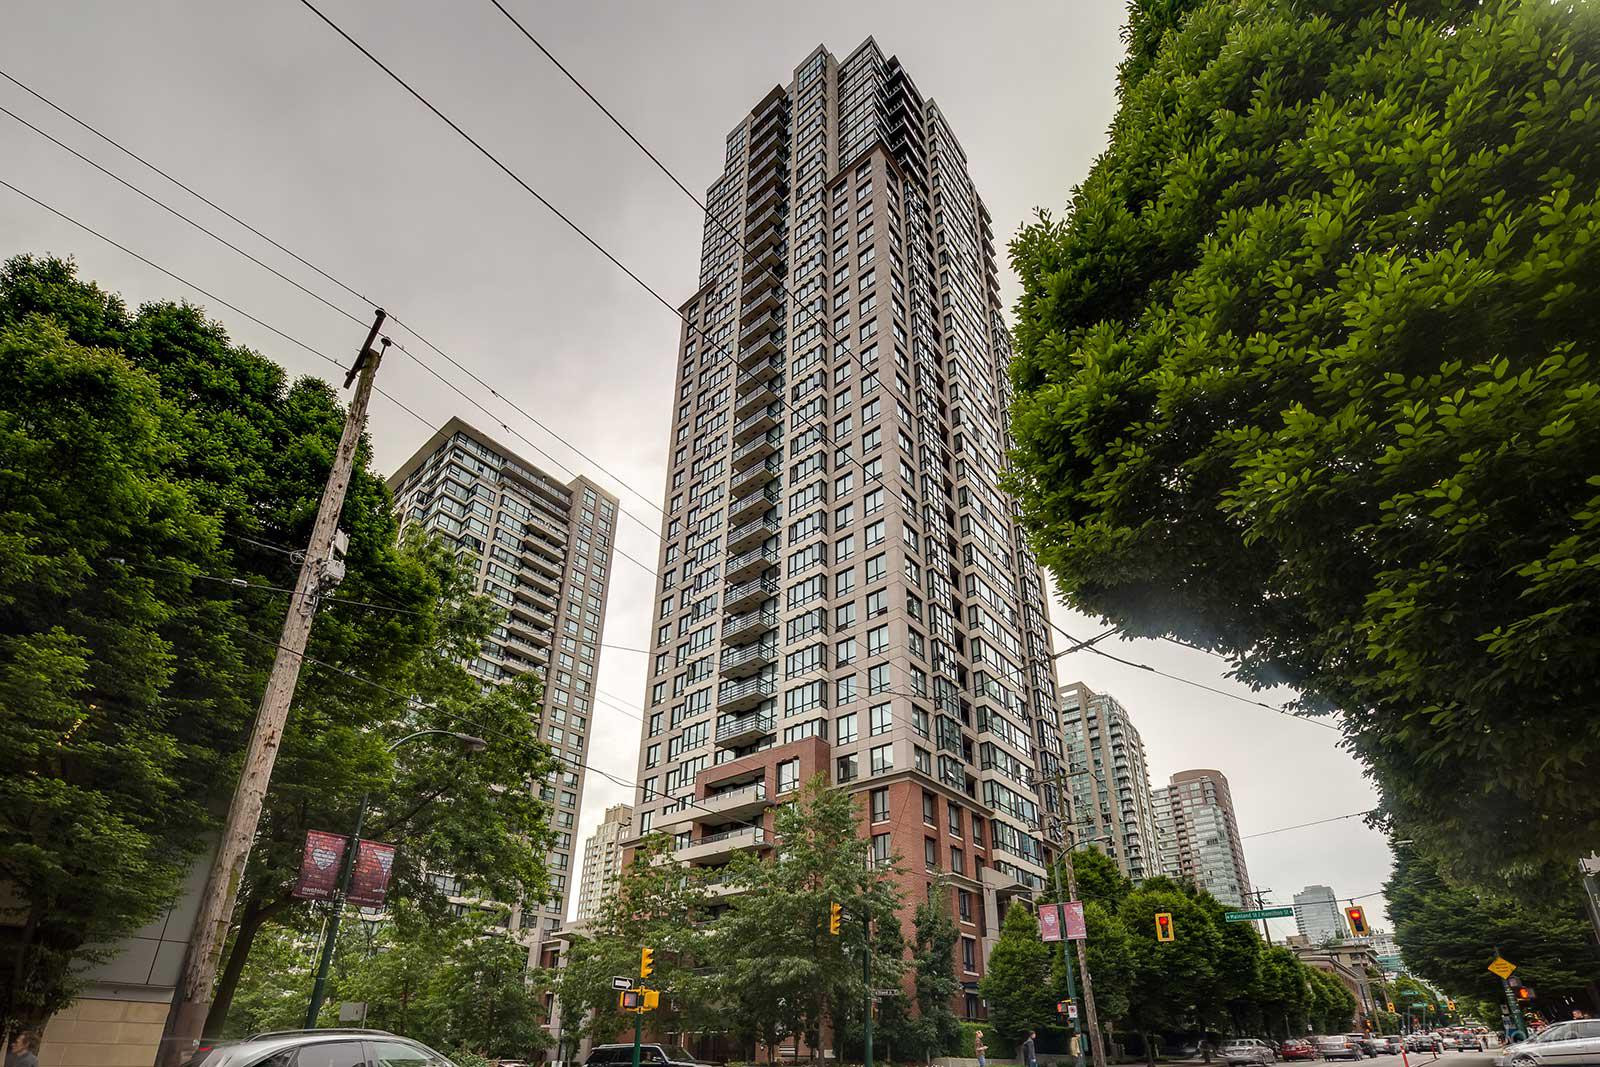 Yaletown Park 2 at 909 Mainland St, Vancouver 1